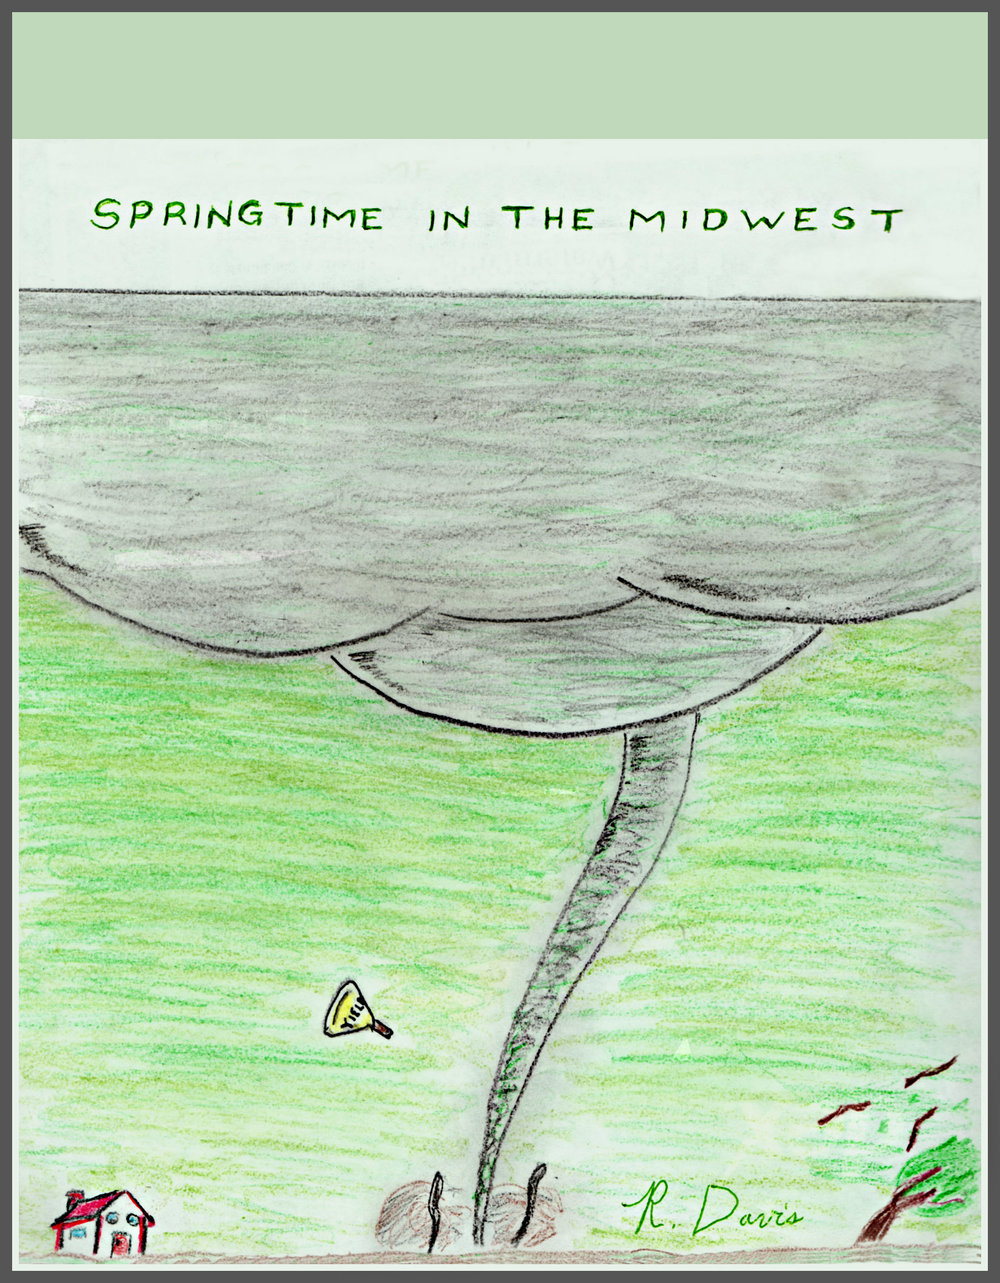 Springtime in the Midwest Ron Davis 2017 Pencil and marker on paper Print $20